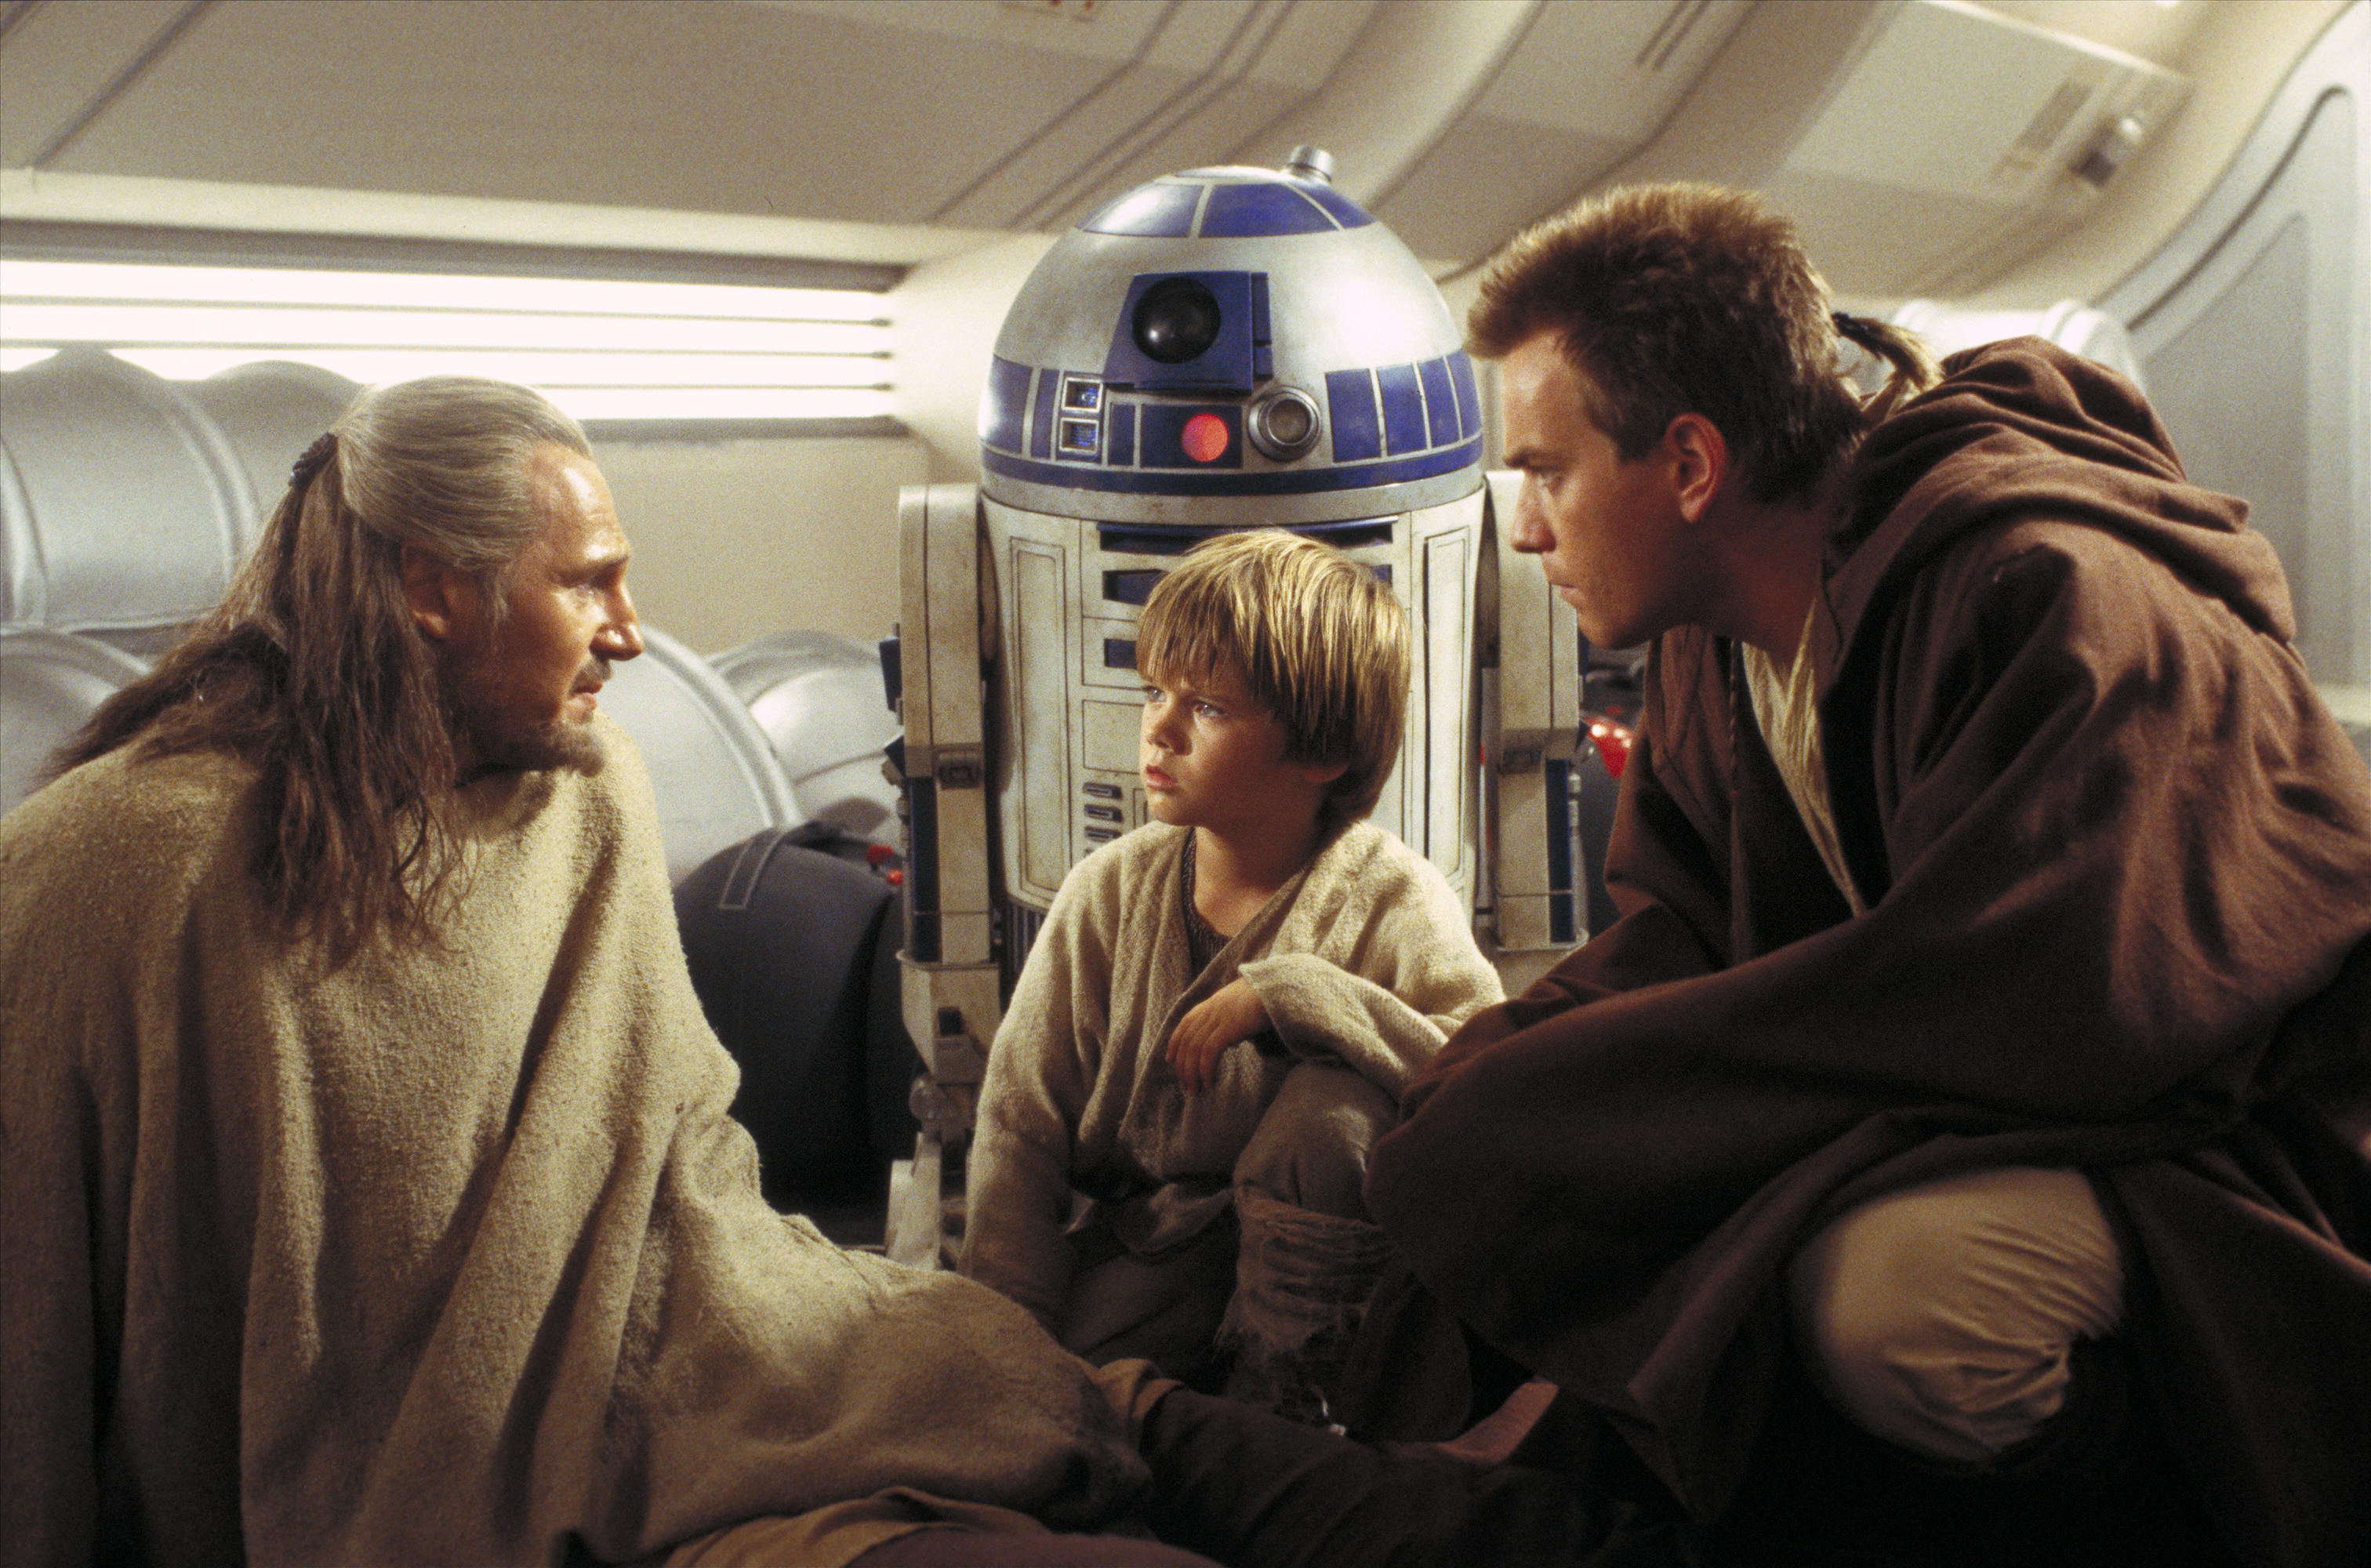 Qui-Gon Jinn introduces young Anakin Skywalker to Obi-Wan, as R2-D2 looks on, in The Phantom Menace.